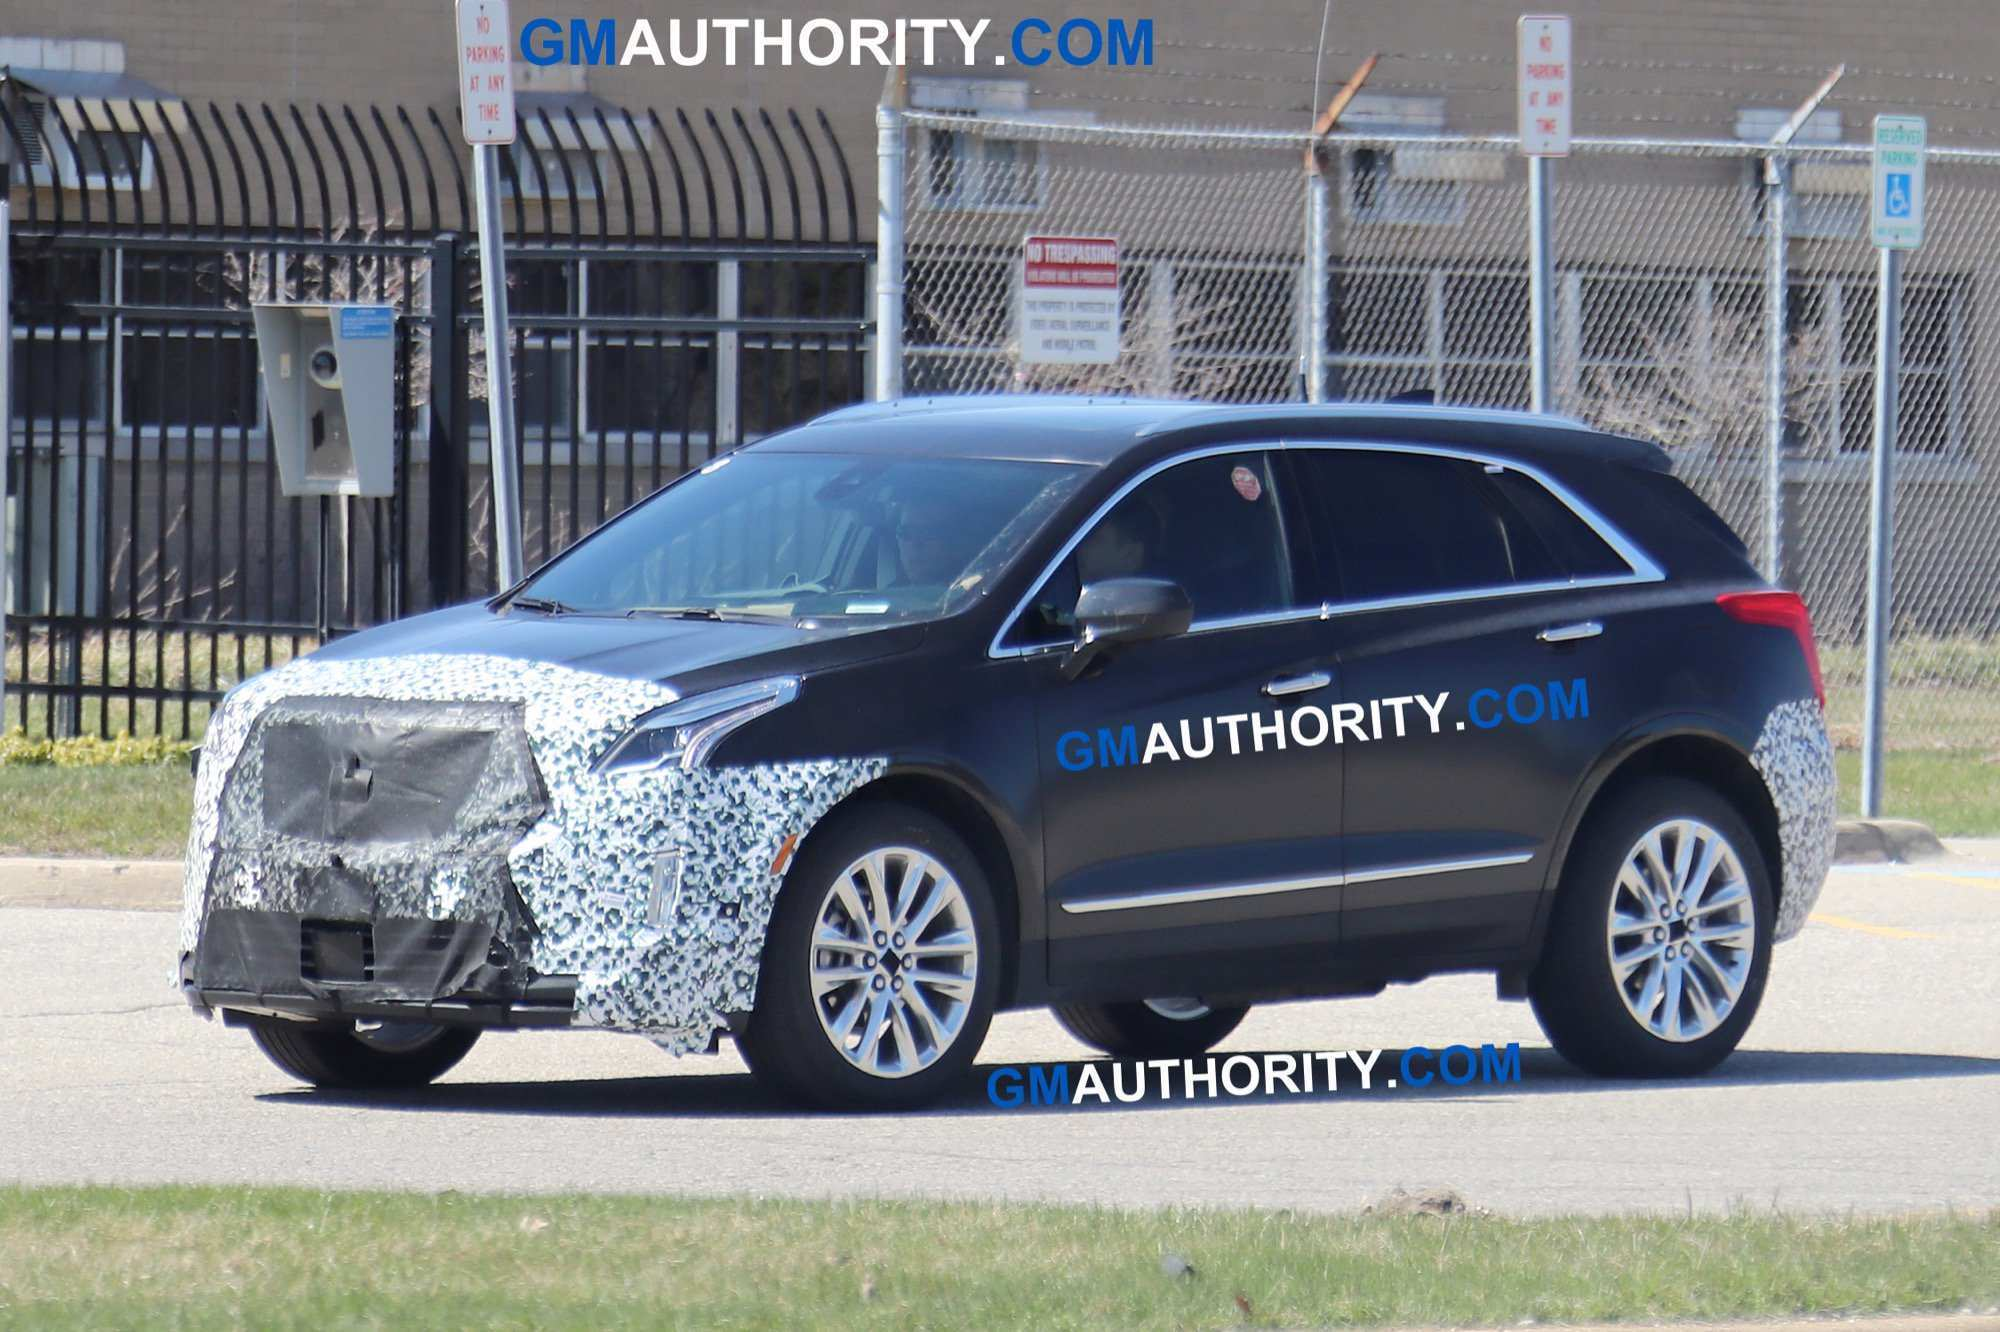 20 All New Spy Shots 2020 Cadillac Xt5 Price and Review by Spy Shots 2020 Cadillac Xt5